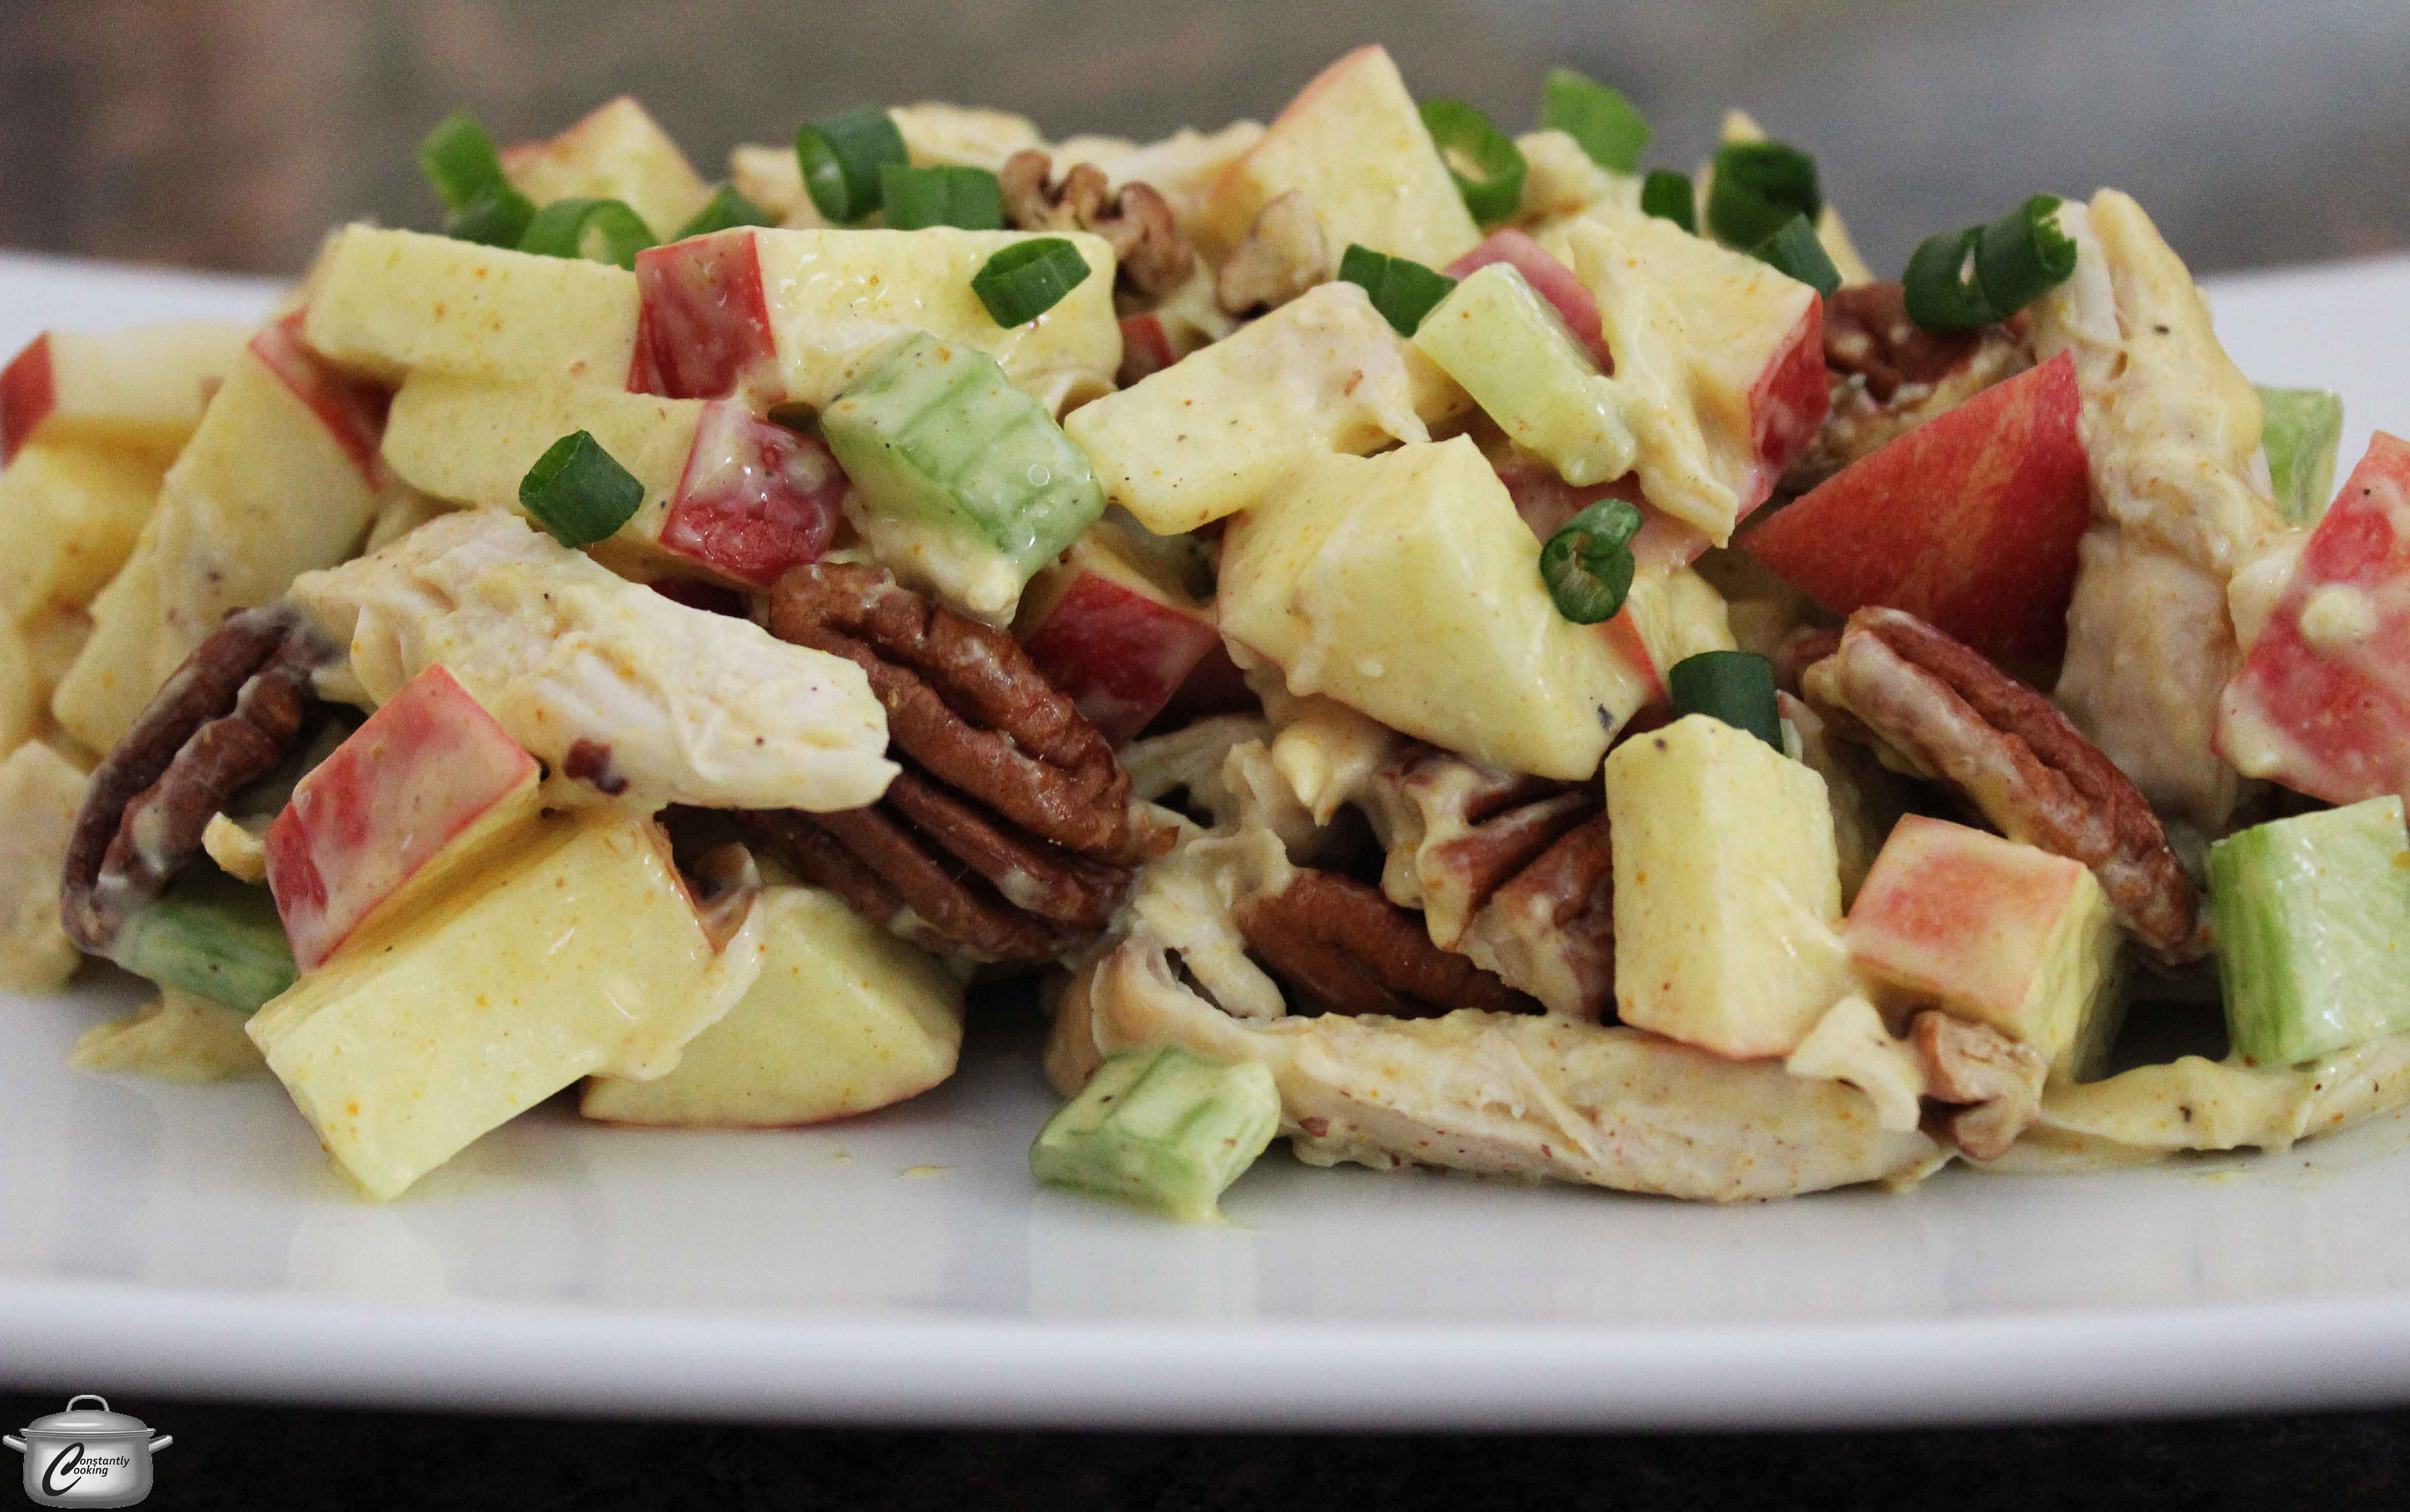 ... celery and pecans give this chicken salad loads of crunch and flavour